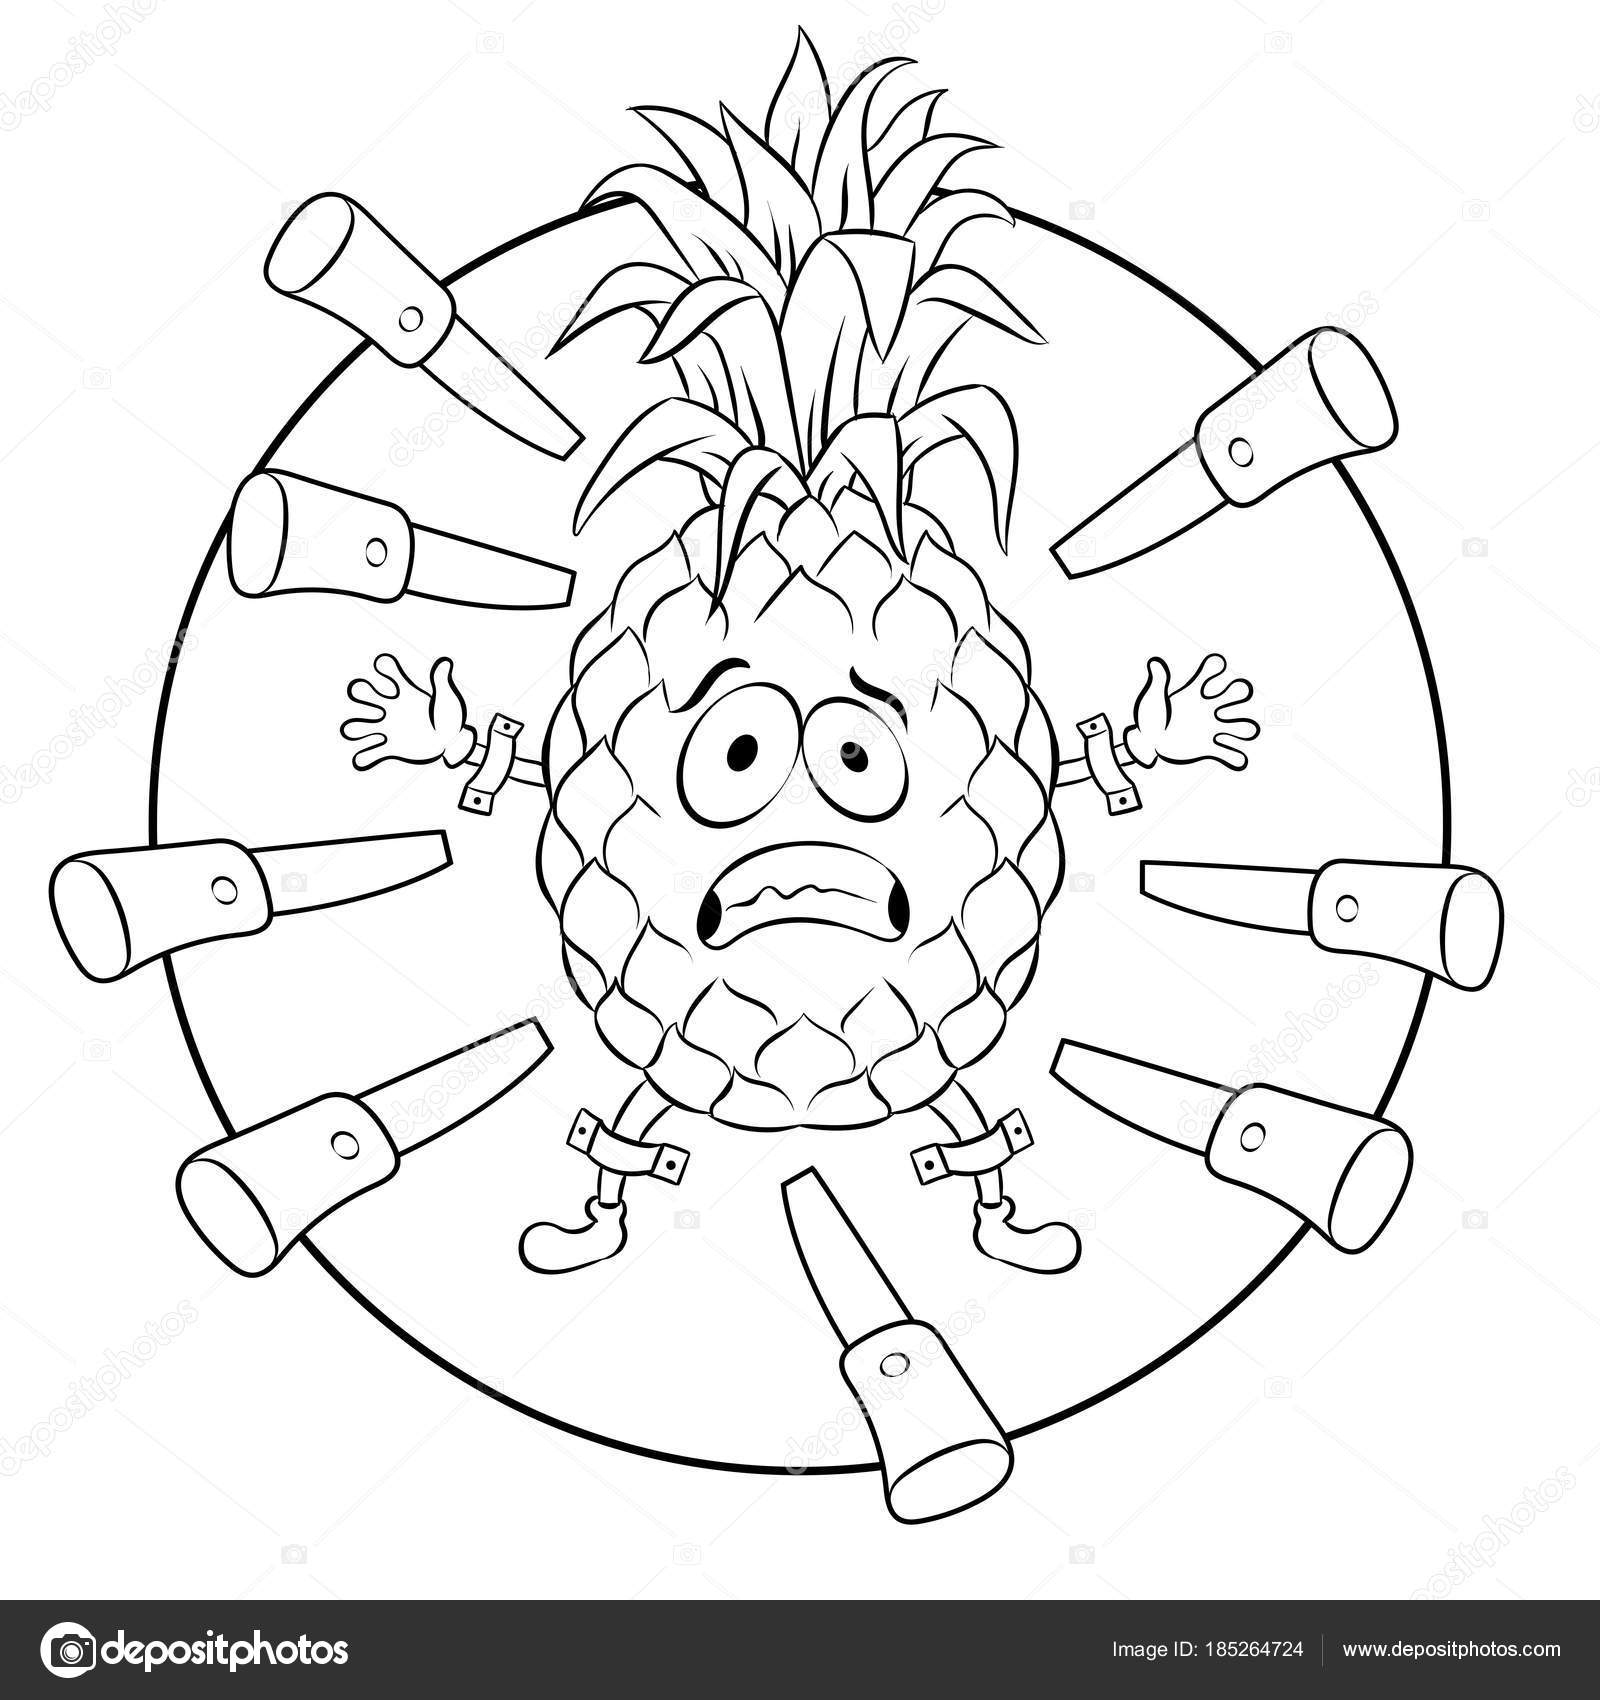 Pineapple target coloring book vector illustration Stock Vector